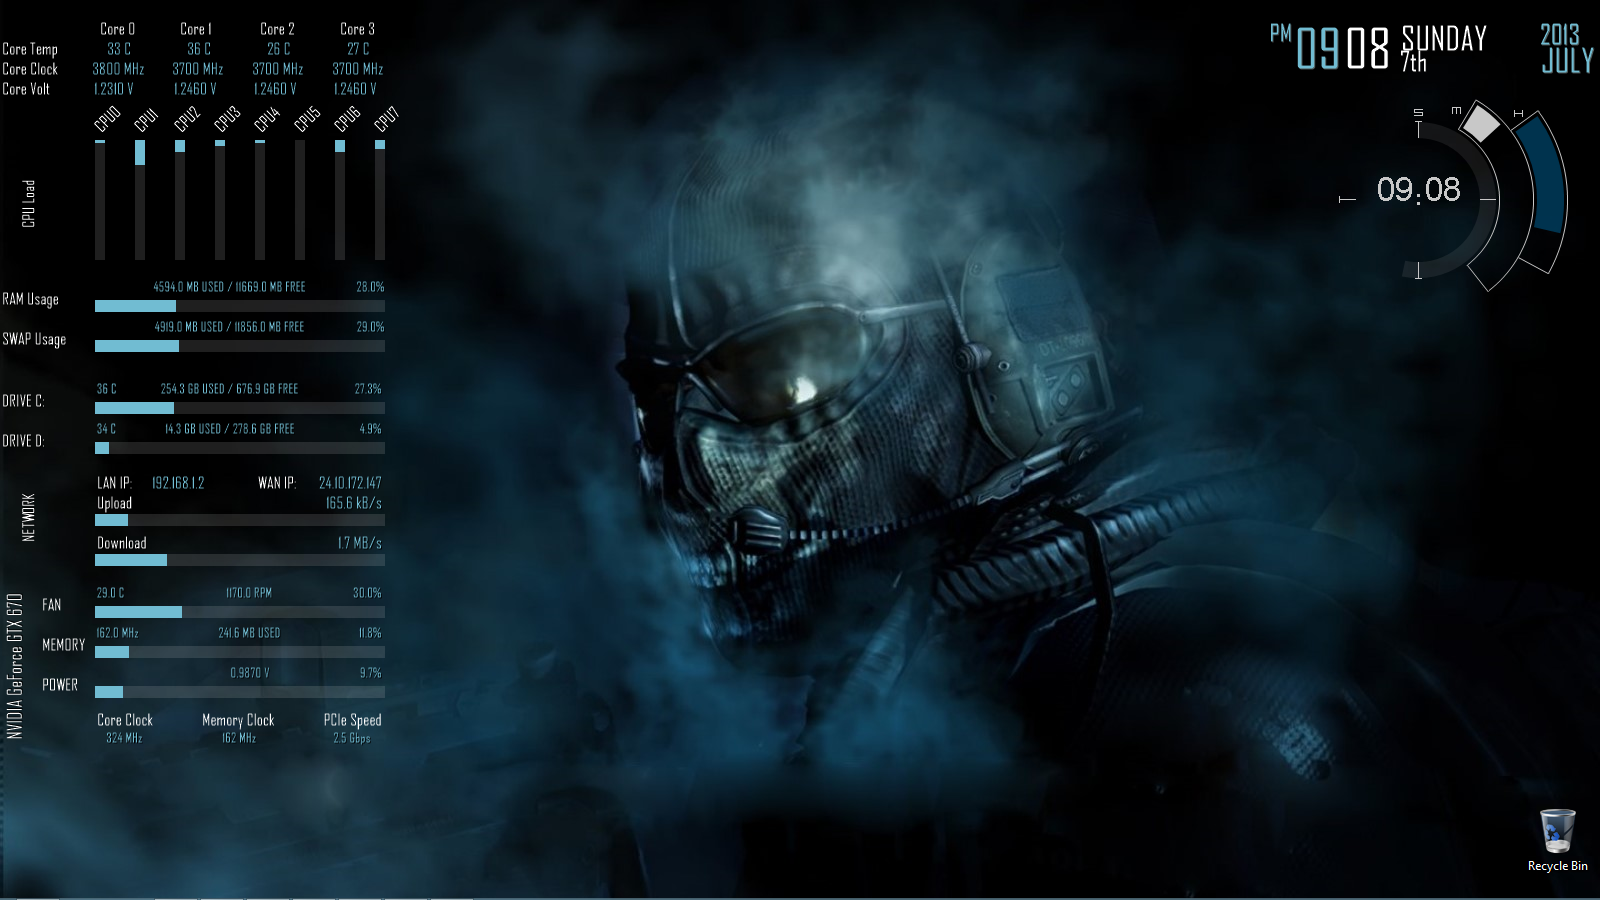 Rainmeter information overload 1 0 by gluzer on deviantart for Deviantart rainmeter